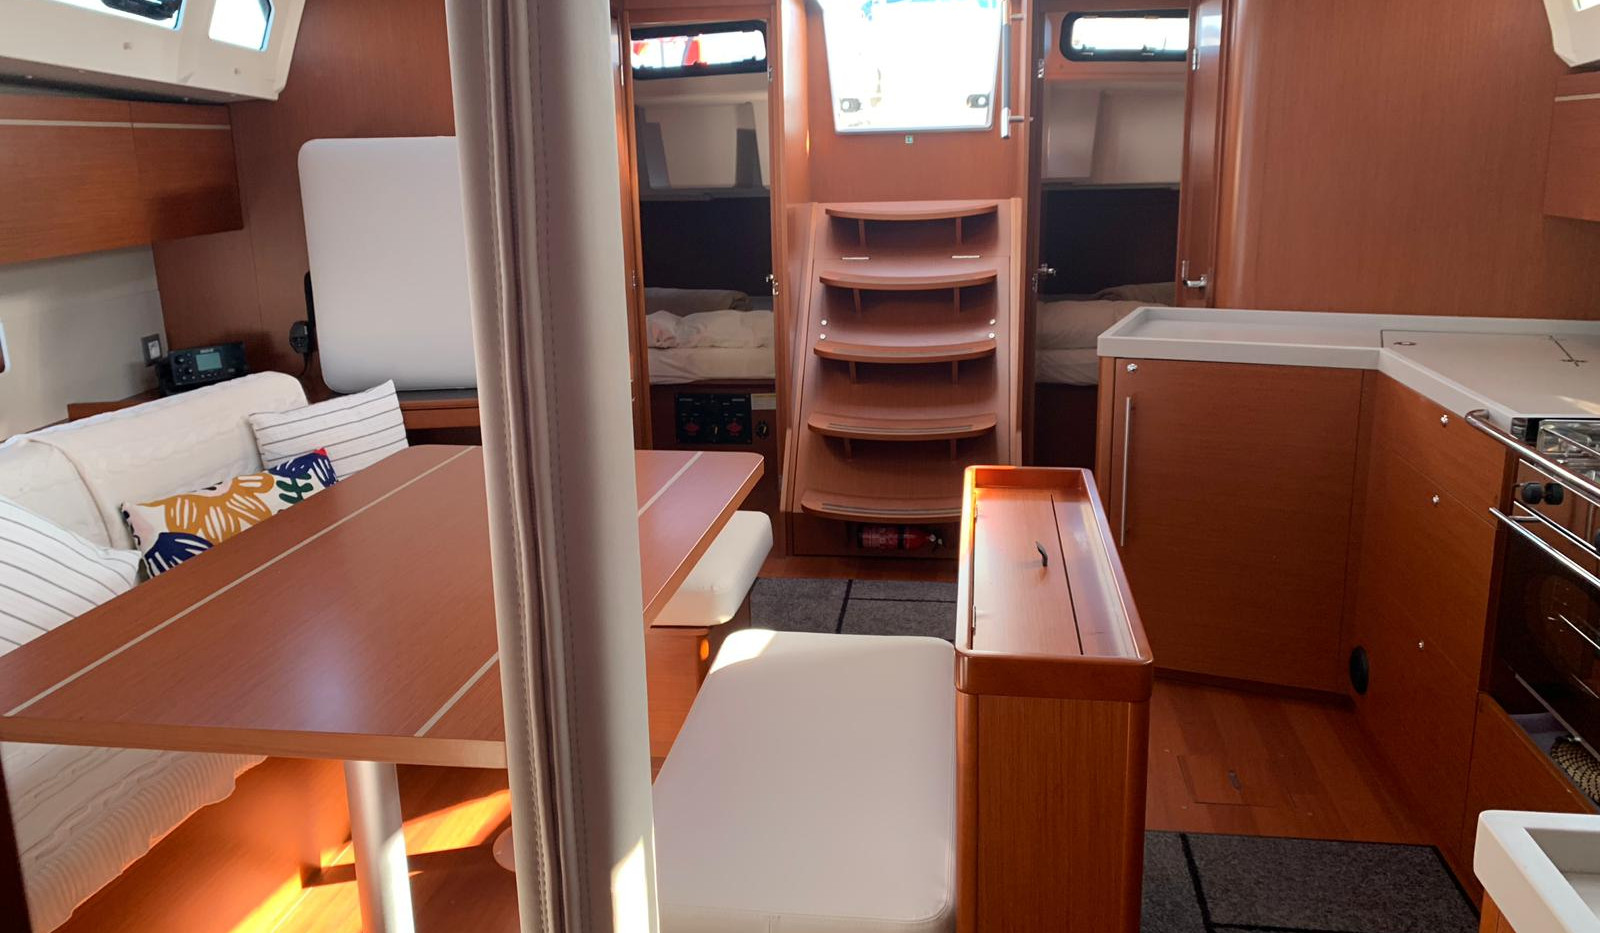 Sailing trip with comforts